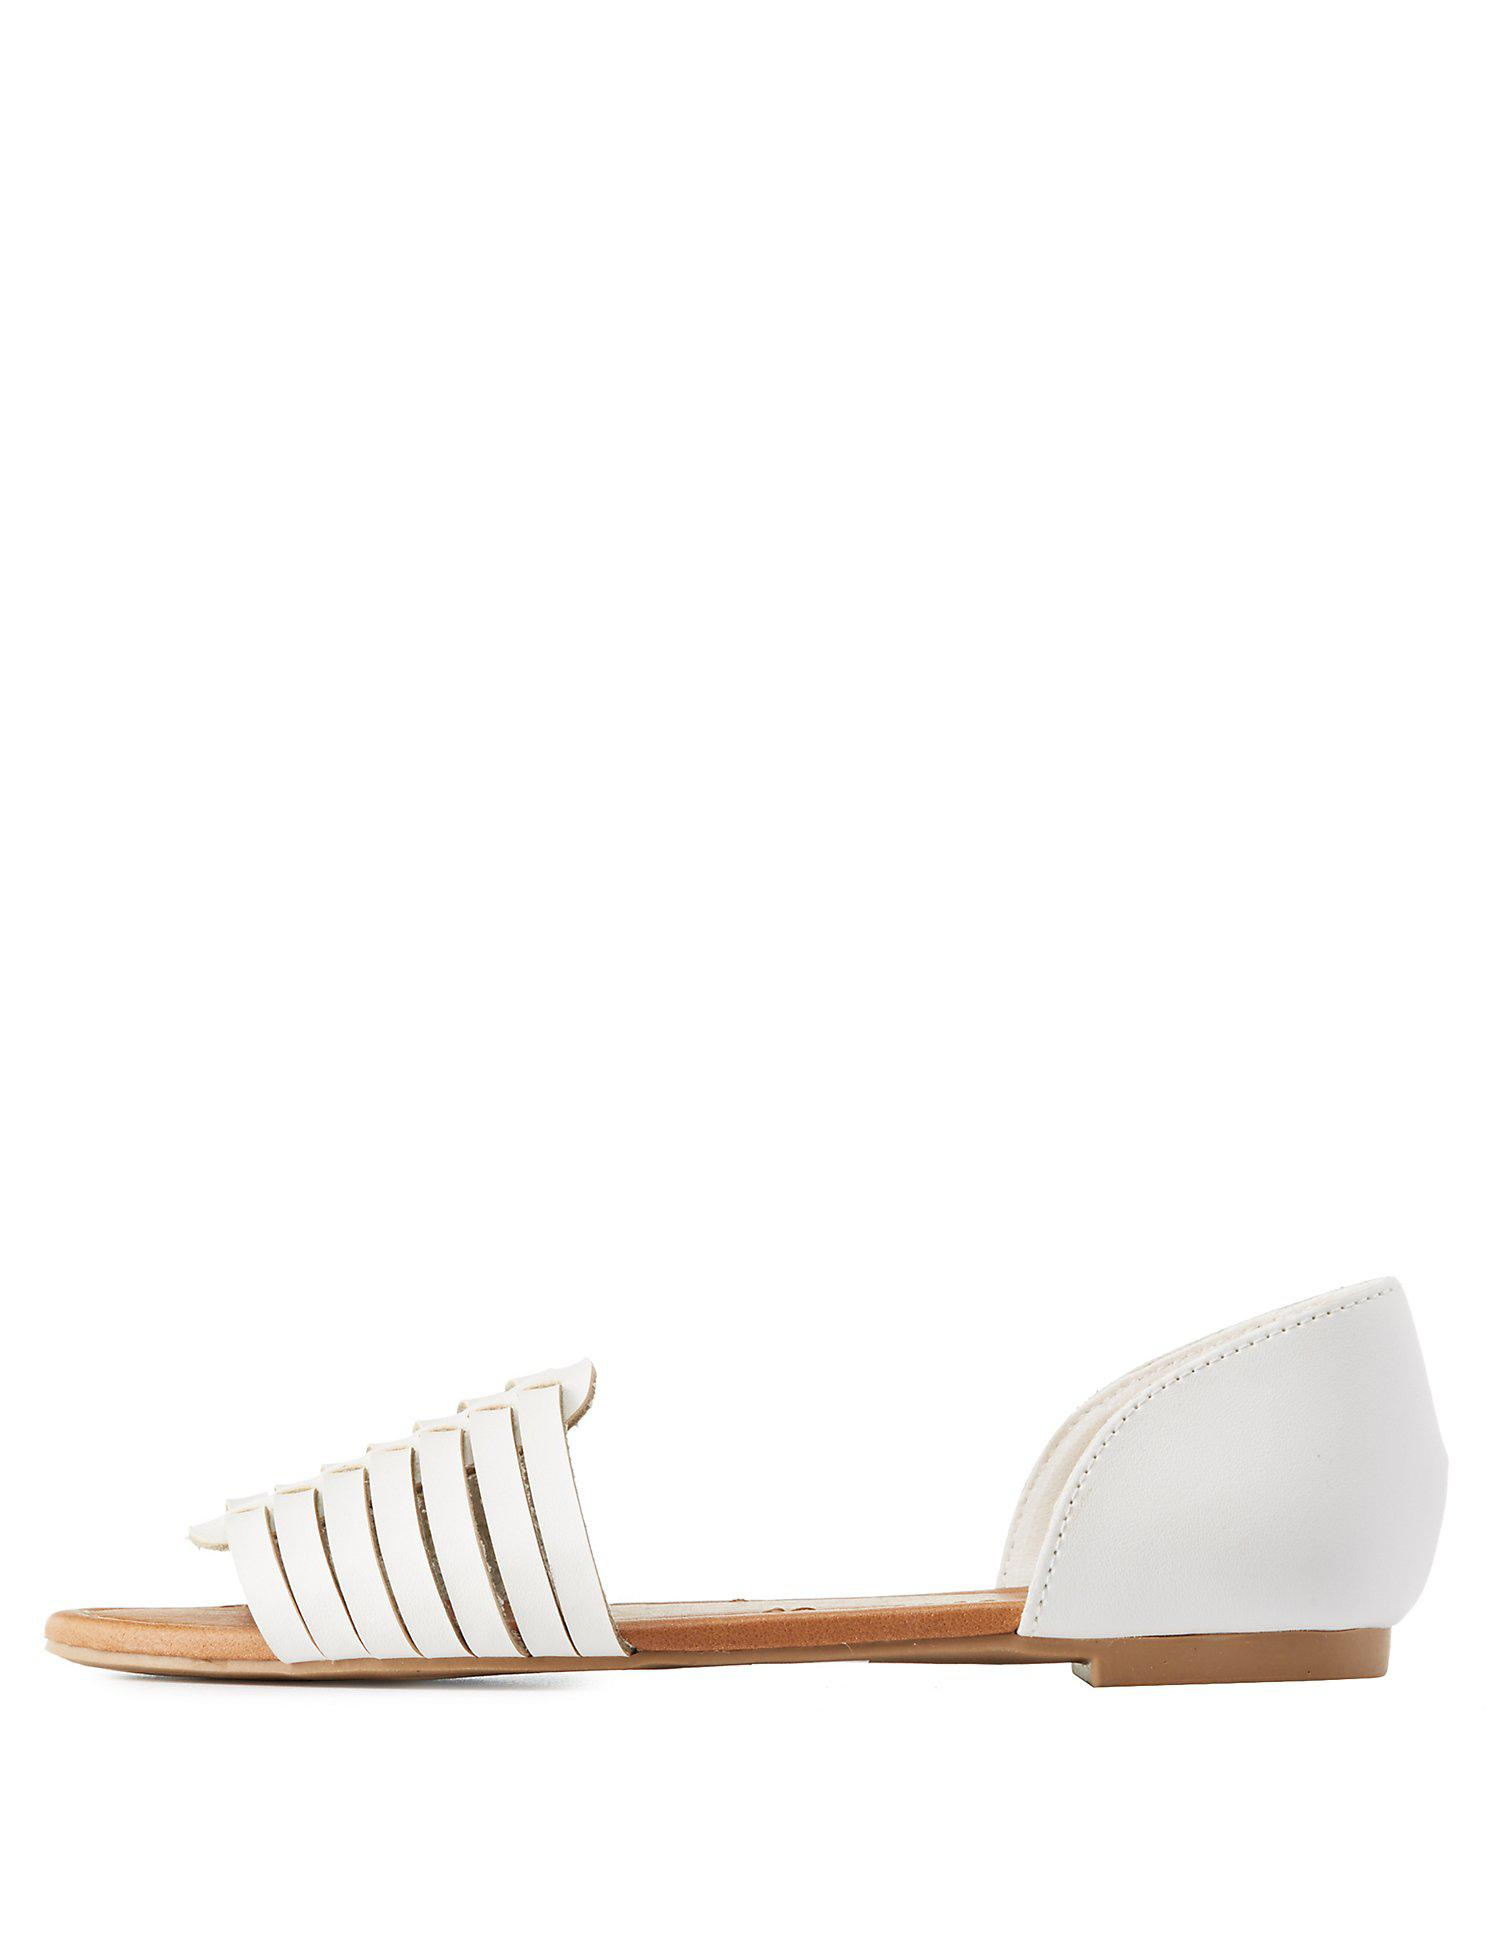 a62793922b0b Lyst - Charlotte Russe Two-piece Huarache Sandals in White